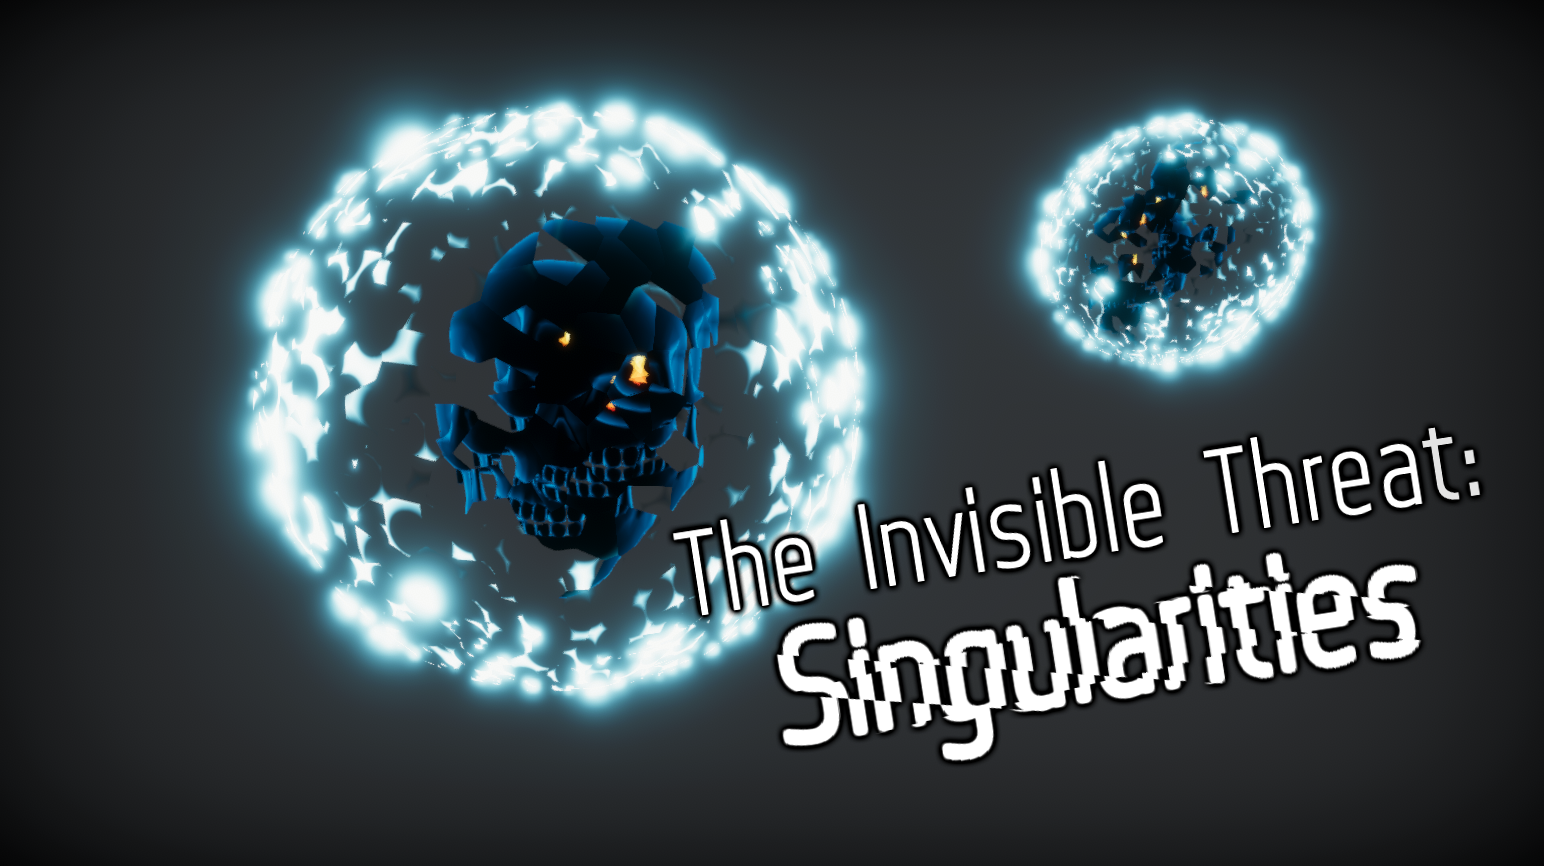 The Invisible Threat: Singularities